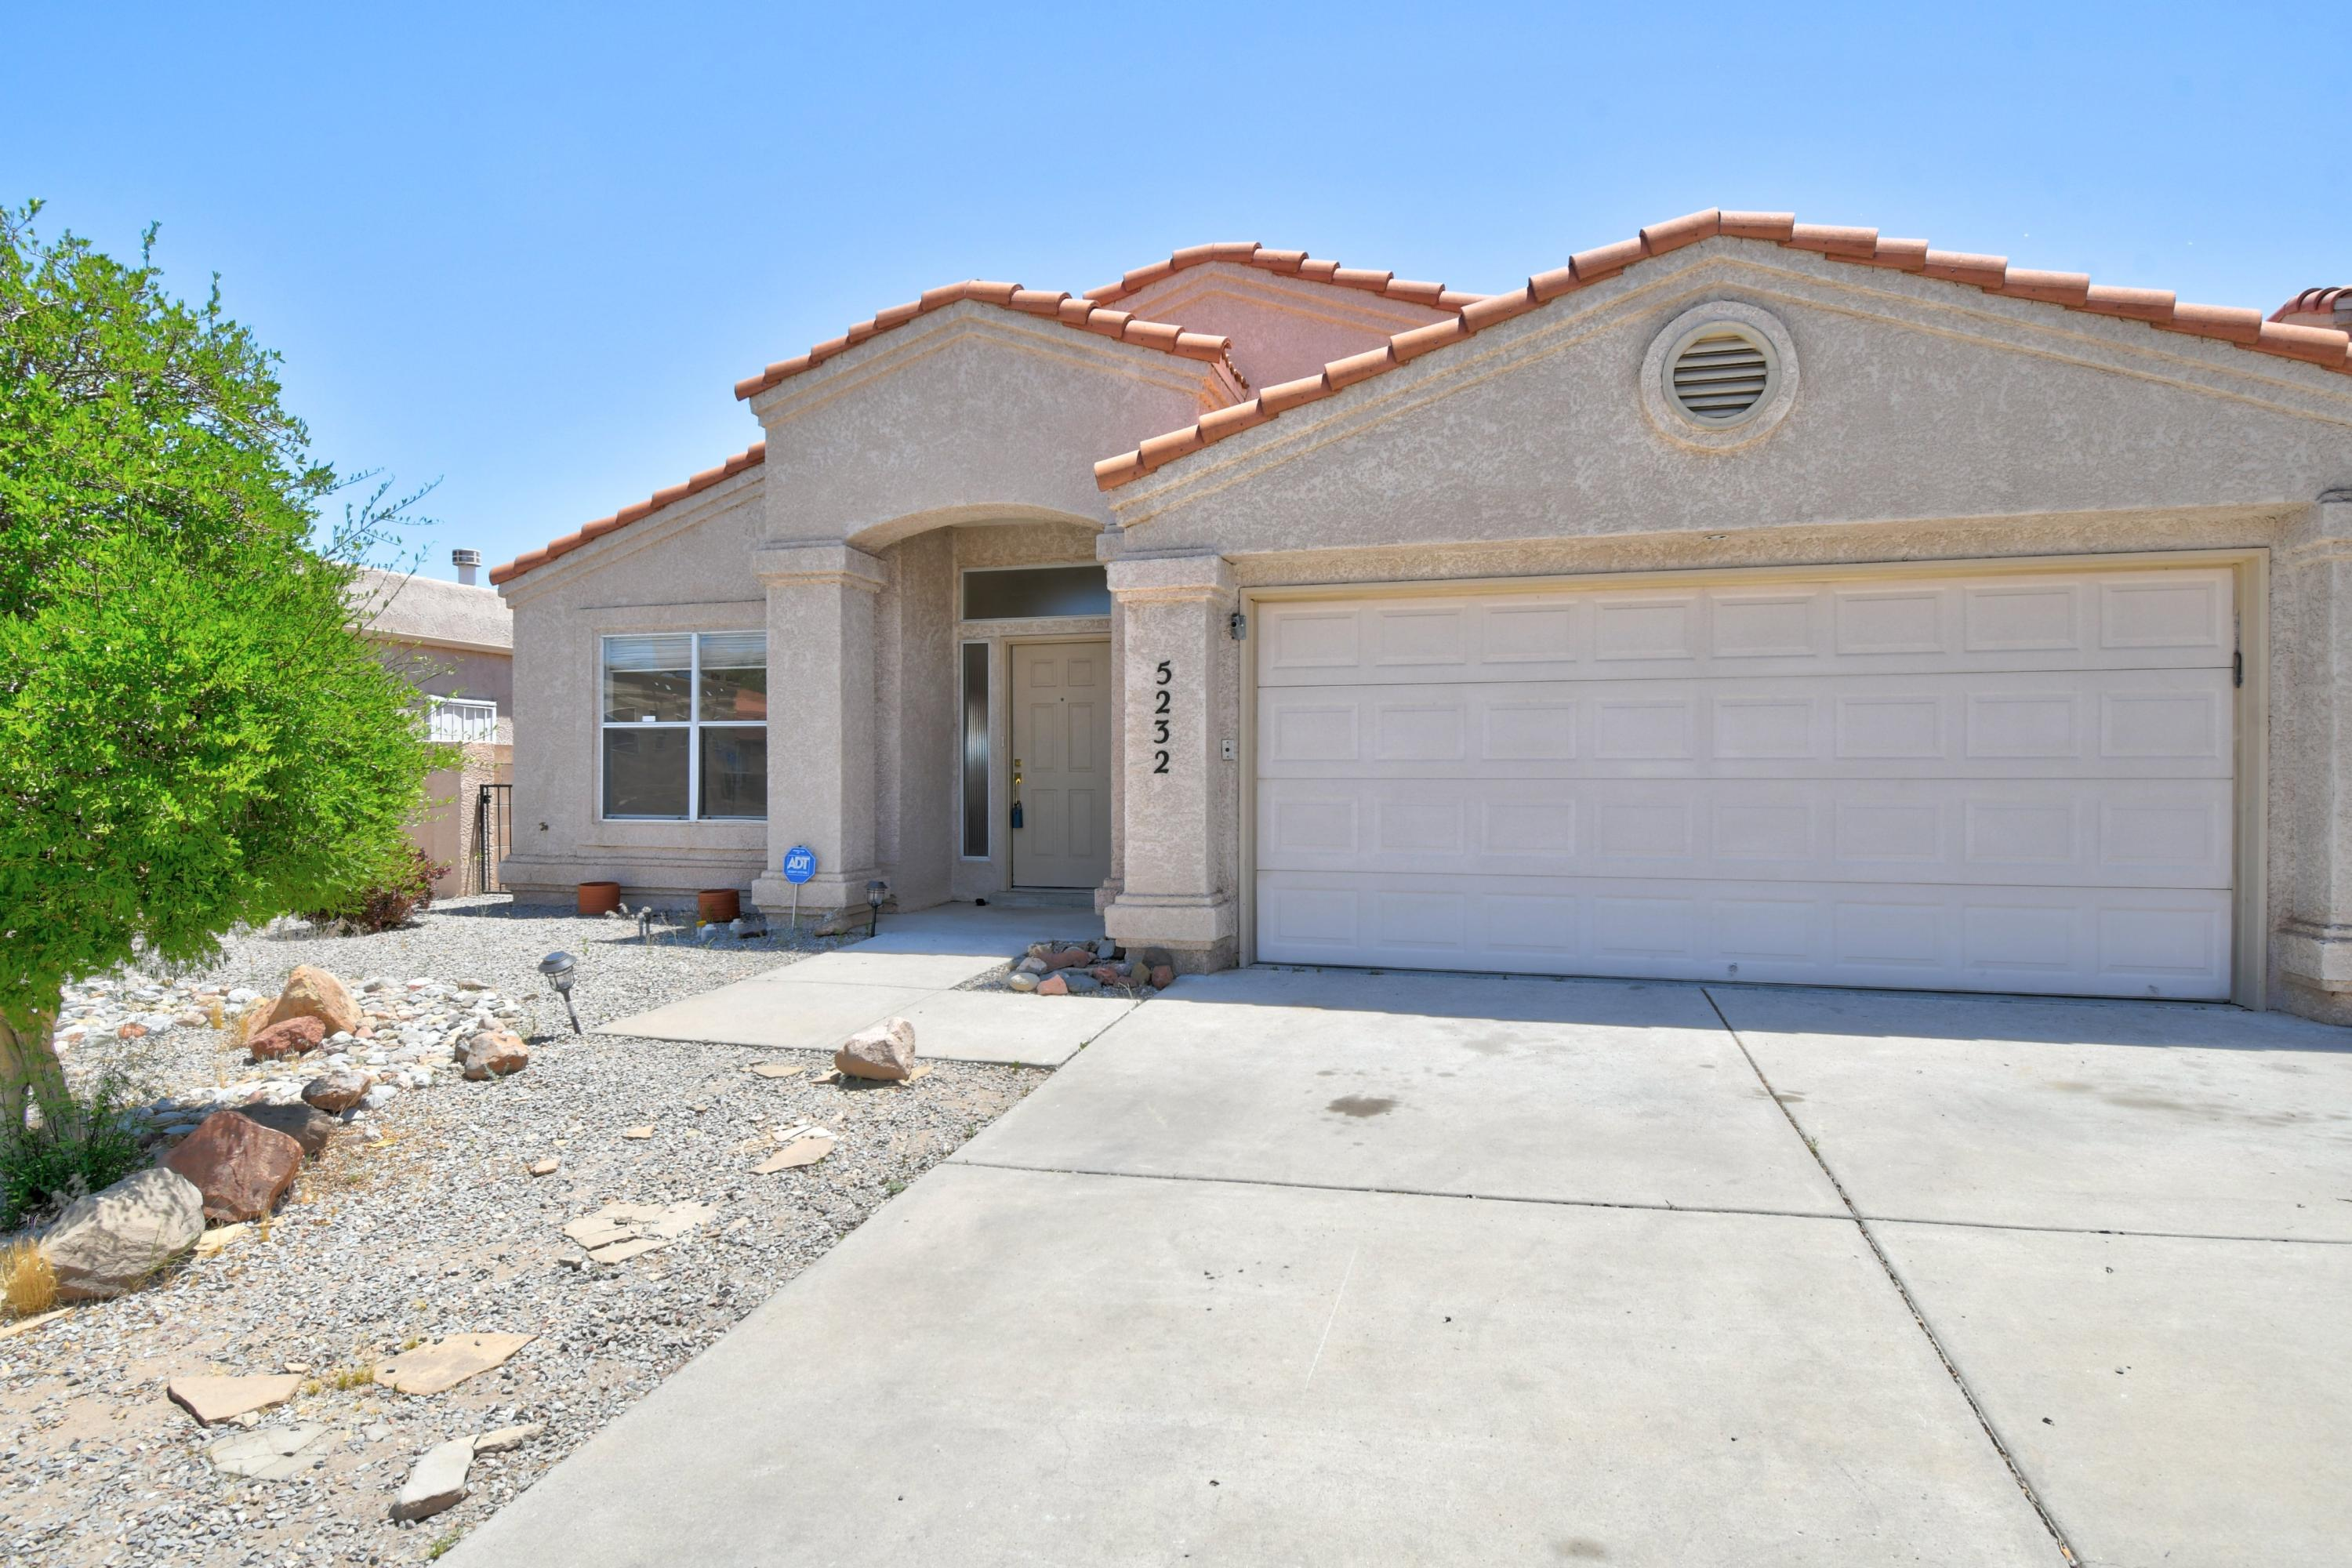 5232 APOLLO Drive NW, Albuquerque, NM 87120 - Albuquerque, NM real estate listing